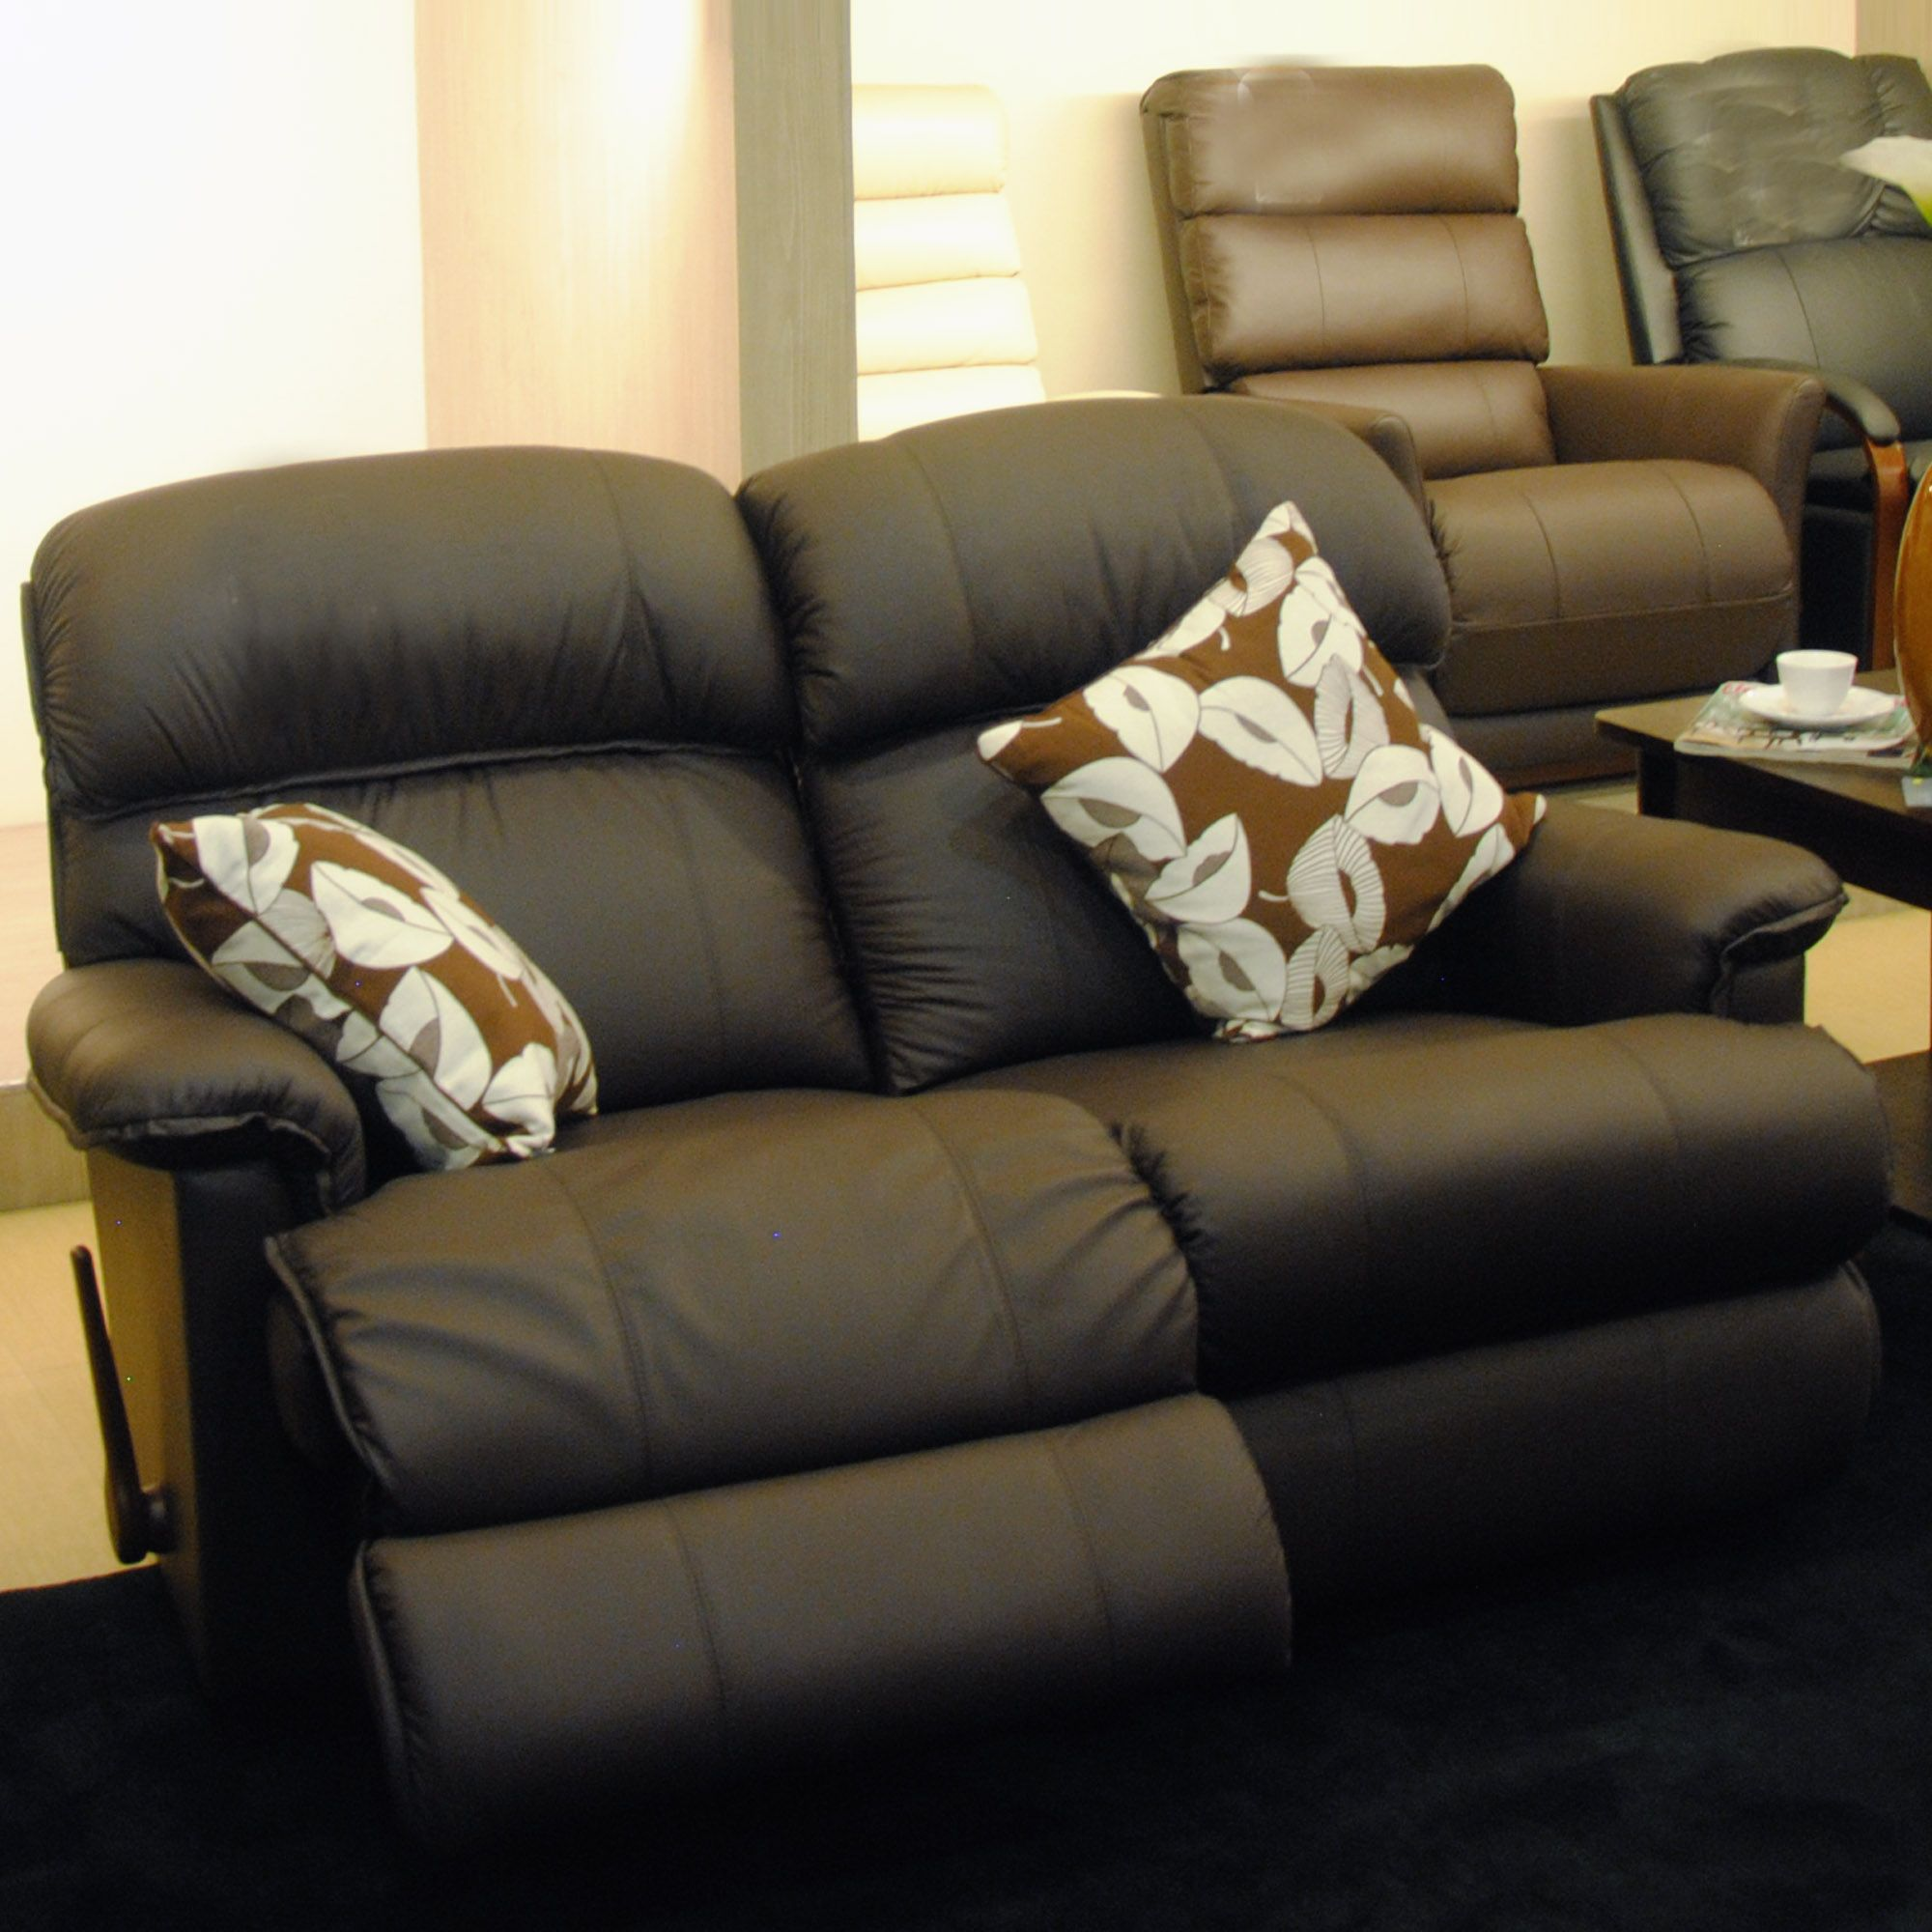 Thereu0027s Nothing Like Kicking Back In A Super Comfy Chair To Keep Stress Out  Of Your